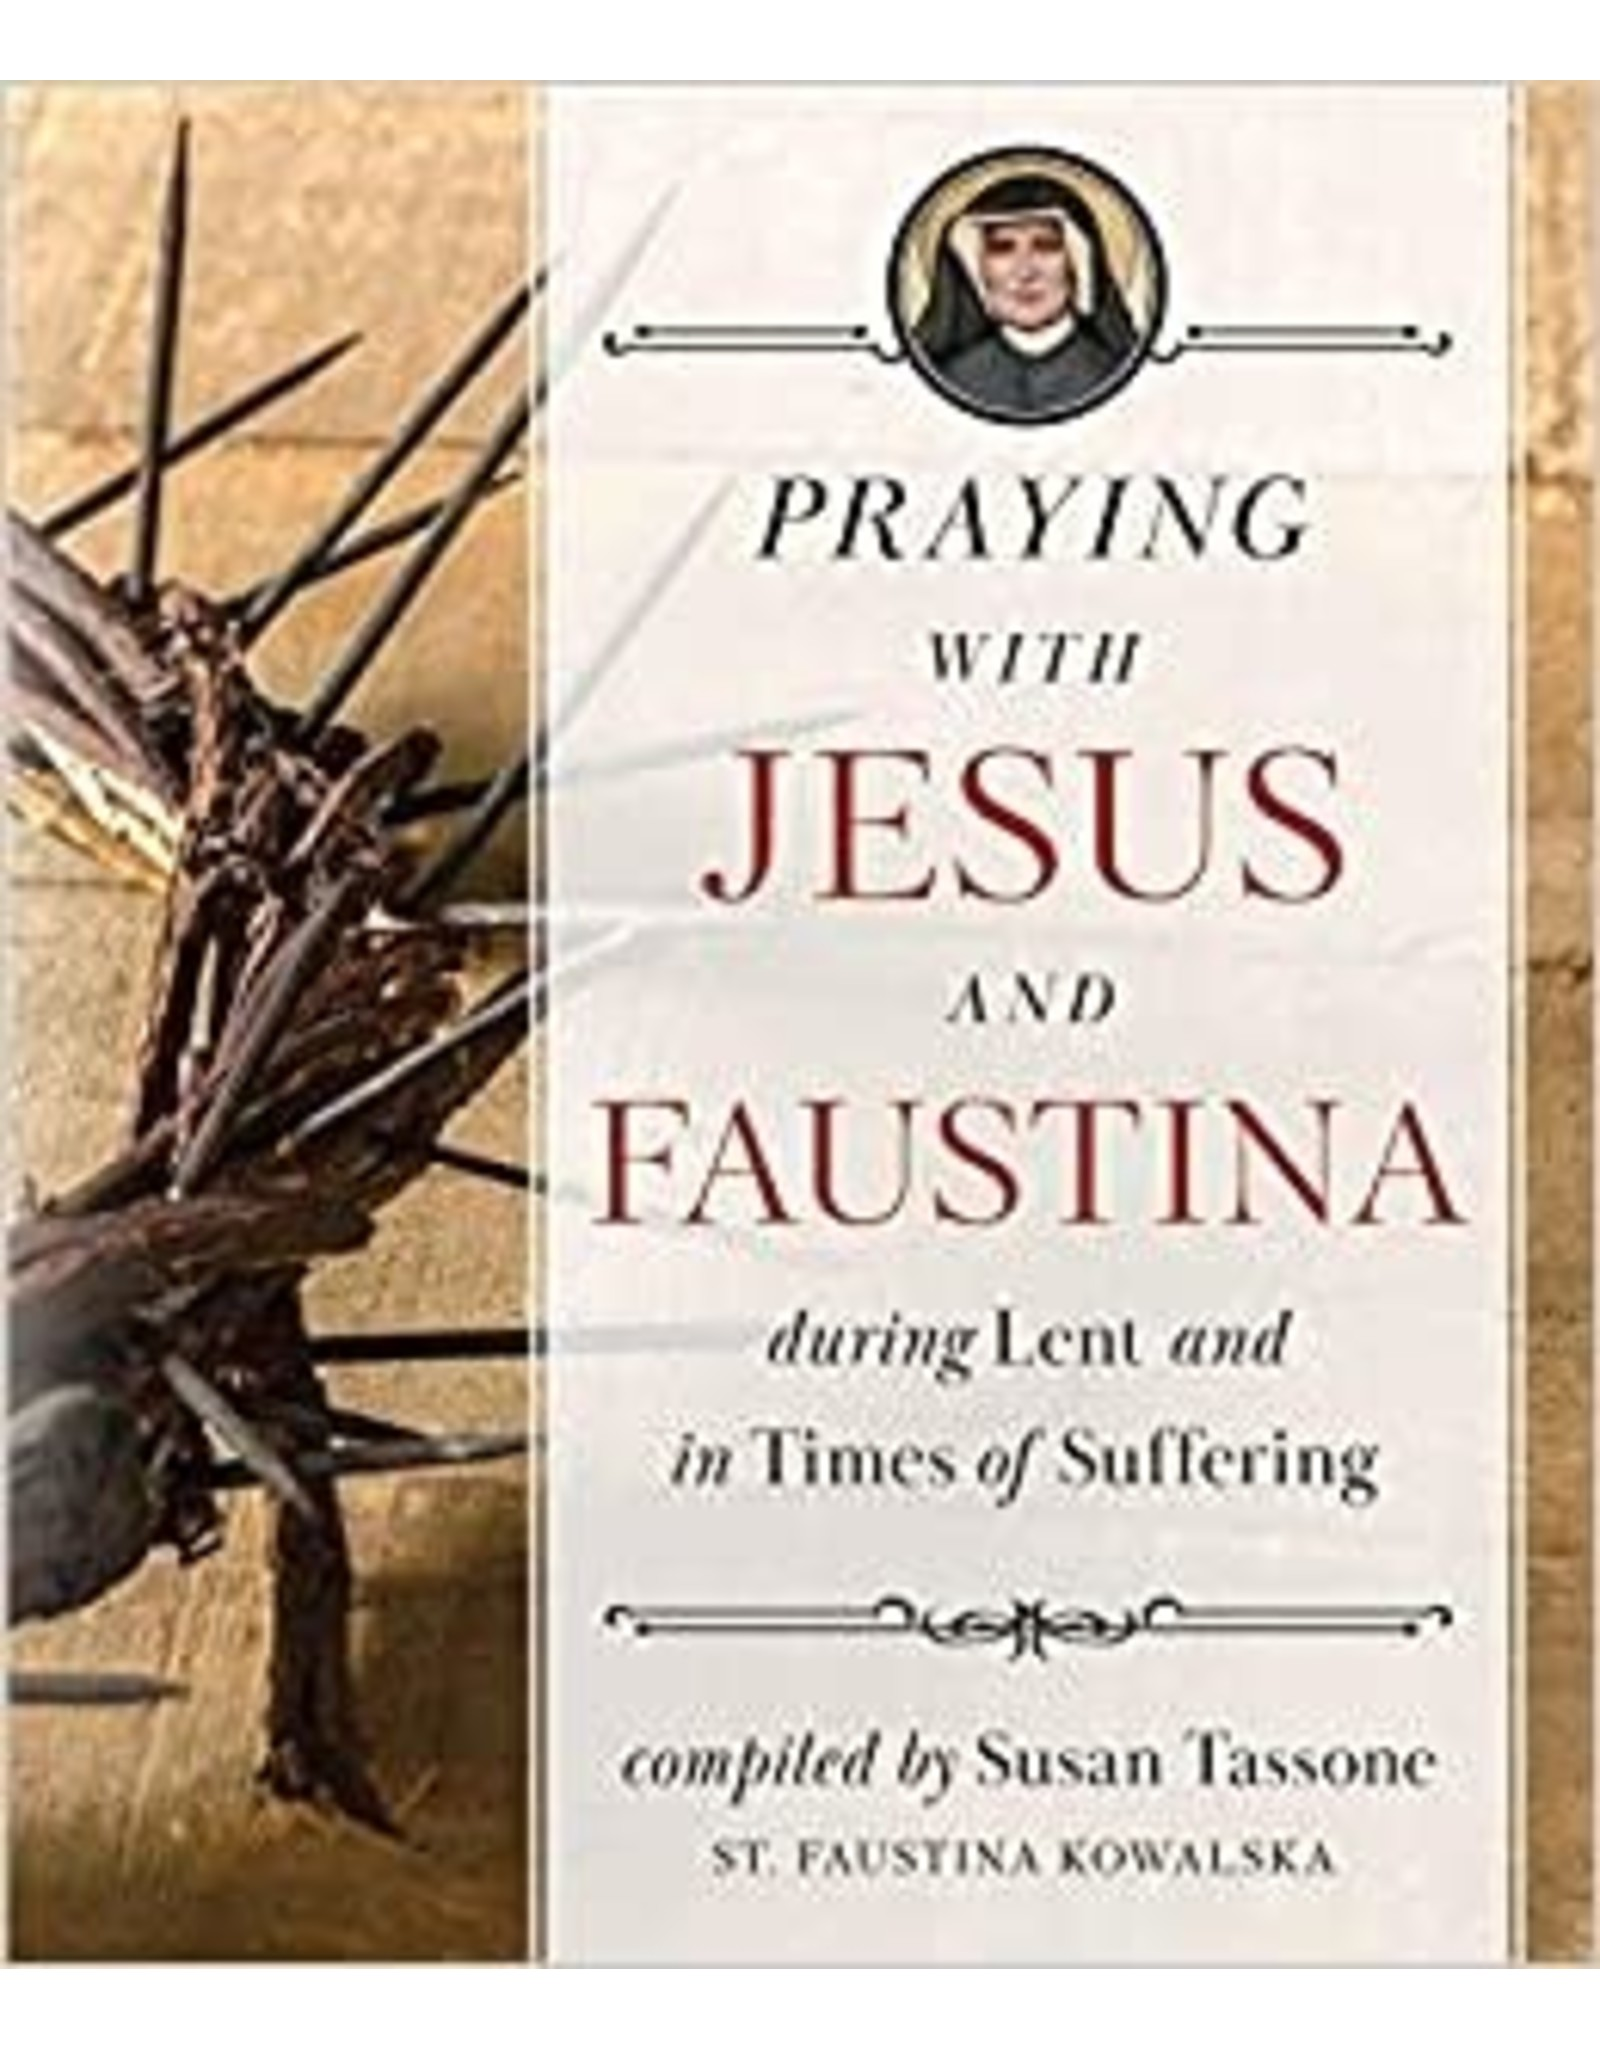 Praying with Jesus & Faustina during Lent & in Times of Suffering